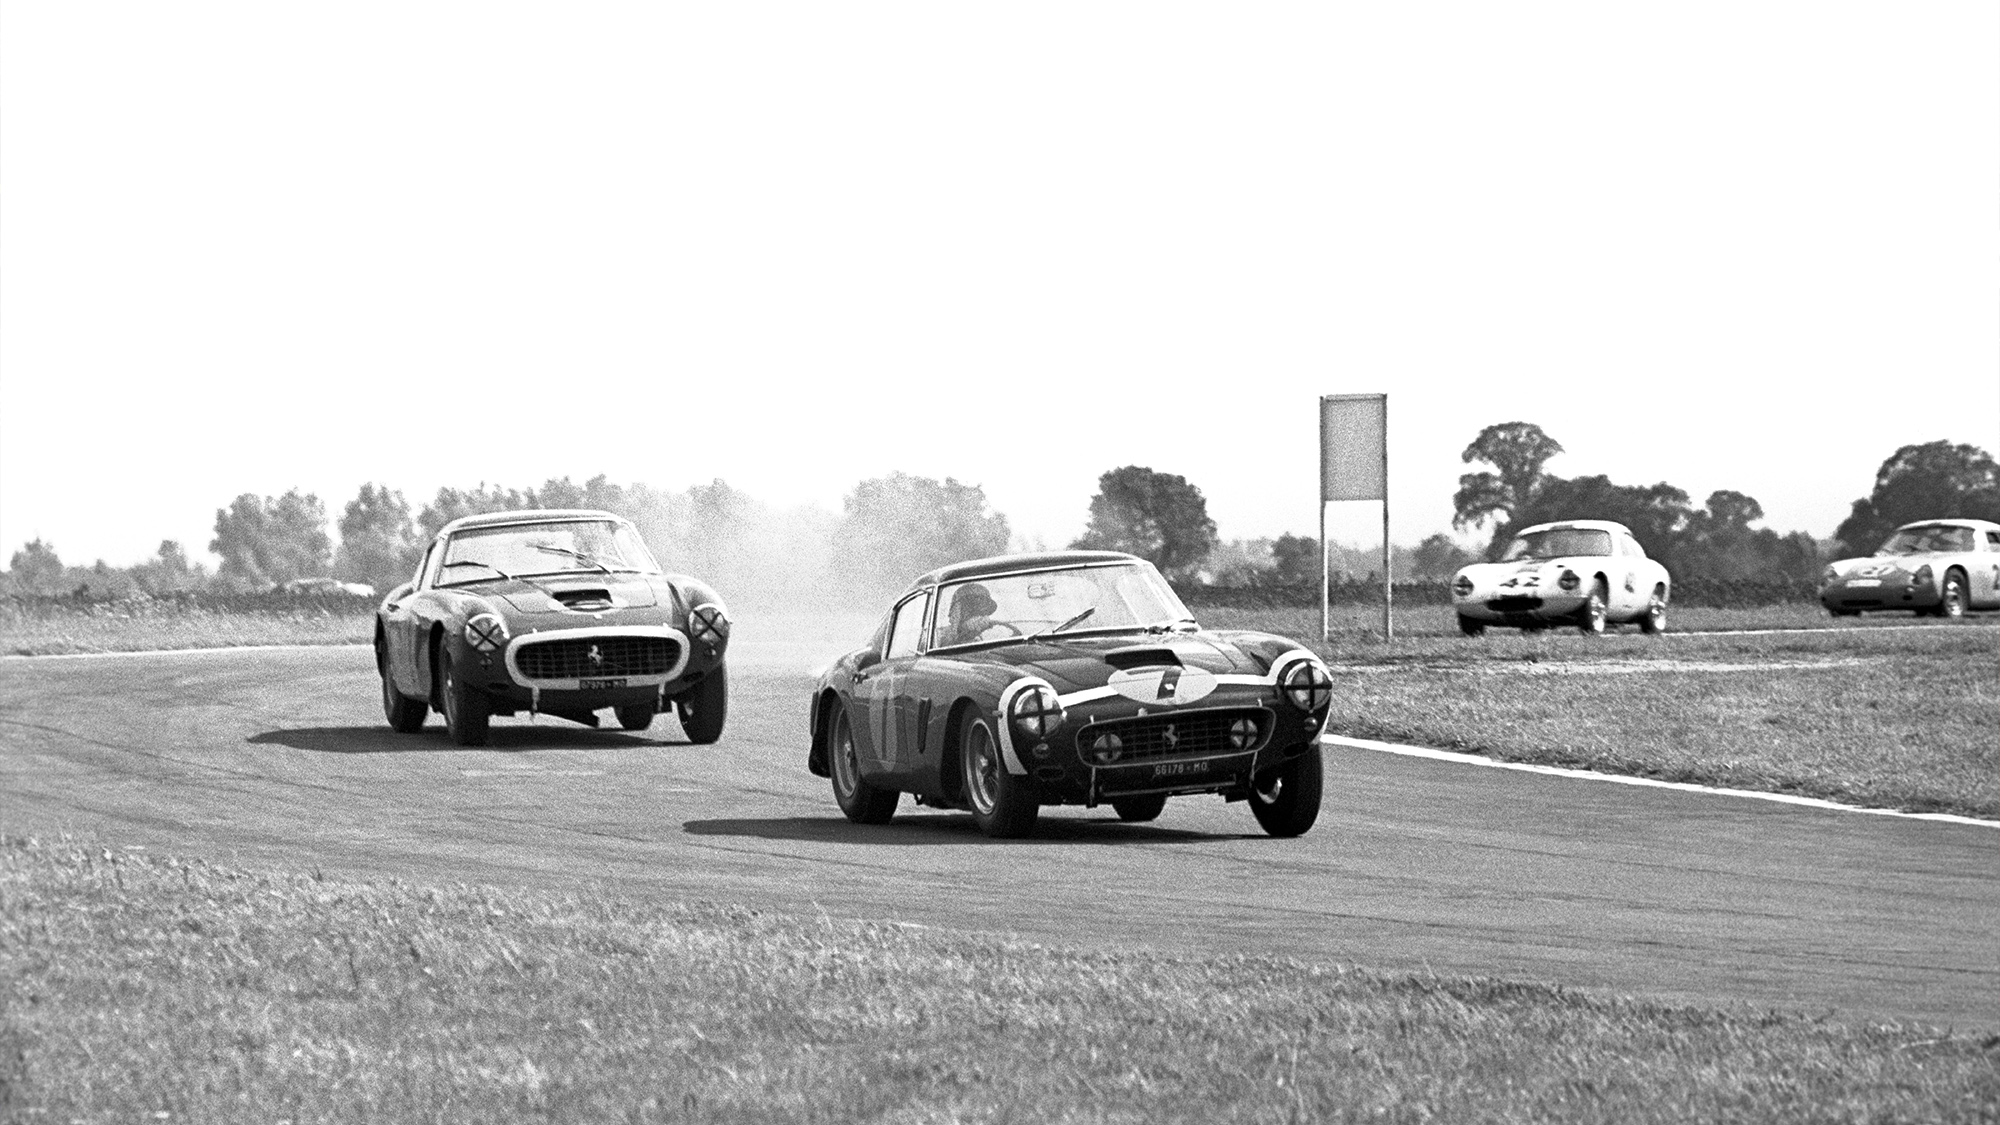 Stirling Moss in a Ferrari 250 GT SWB leads Mike Parkes in the 1961 Tourist Trophy at Goodwood